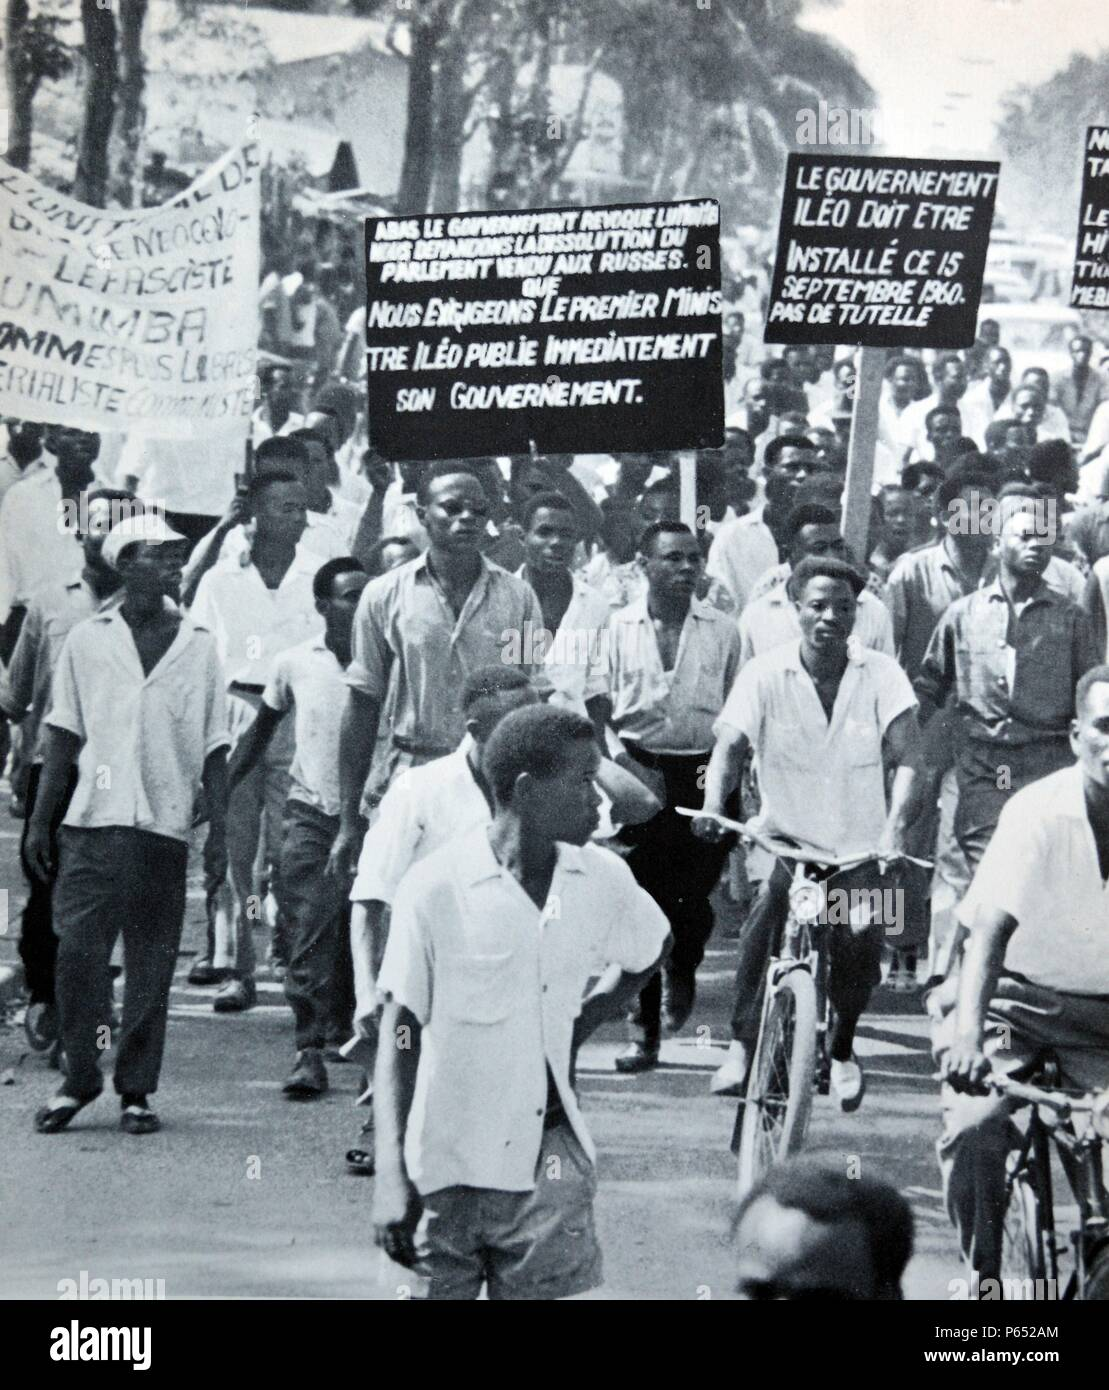 Congo; Leopoldville 1960. Congolese protesters demonstrate for independence from Belgium 1960 - Stock Image